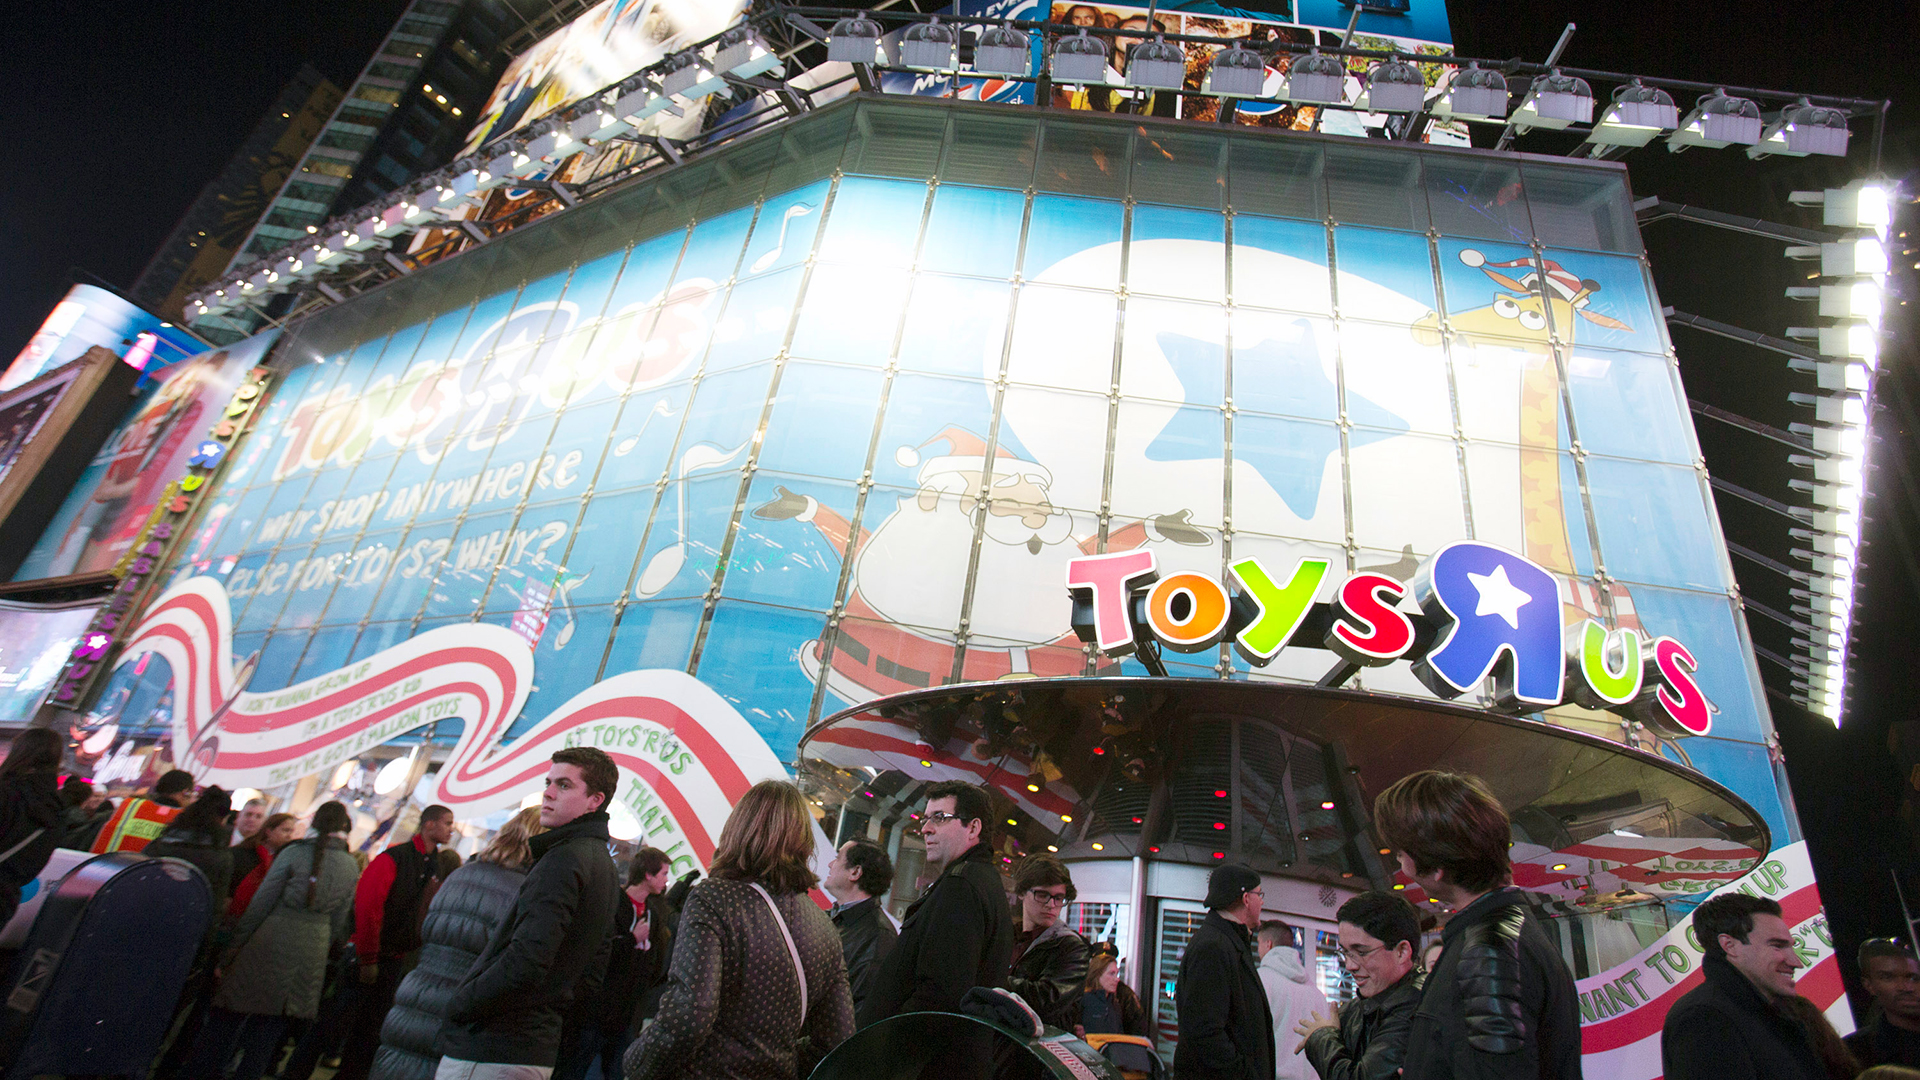 Toys R Us Store that was in Times Square-159532.jpg67548569